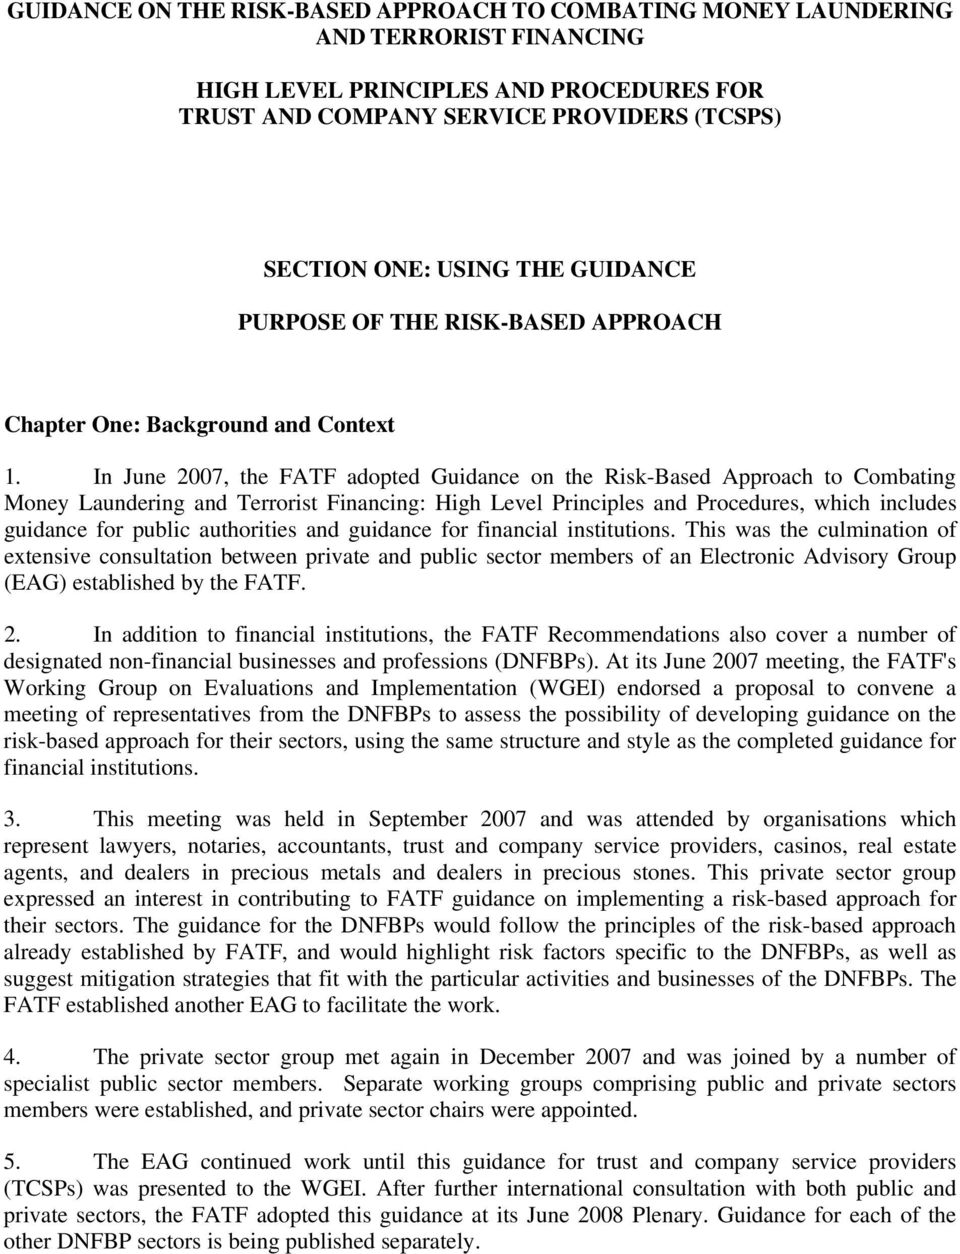 In June 2007, the FATF adopted Guidance on the Risk-Based Approach to Combating Money Laundering and Terrorist Financing: High Level Principles and Procedures, which includes guidance for public